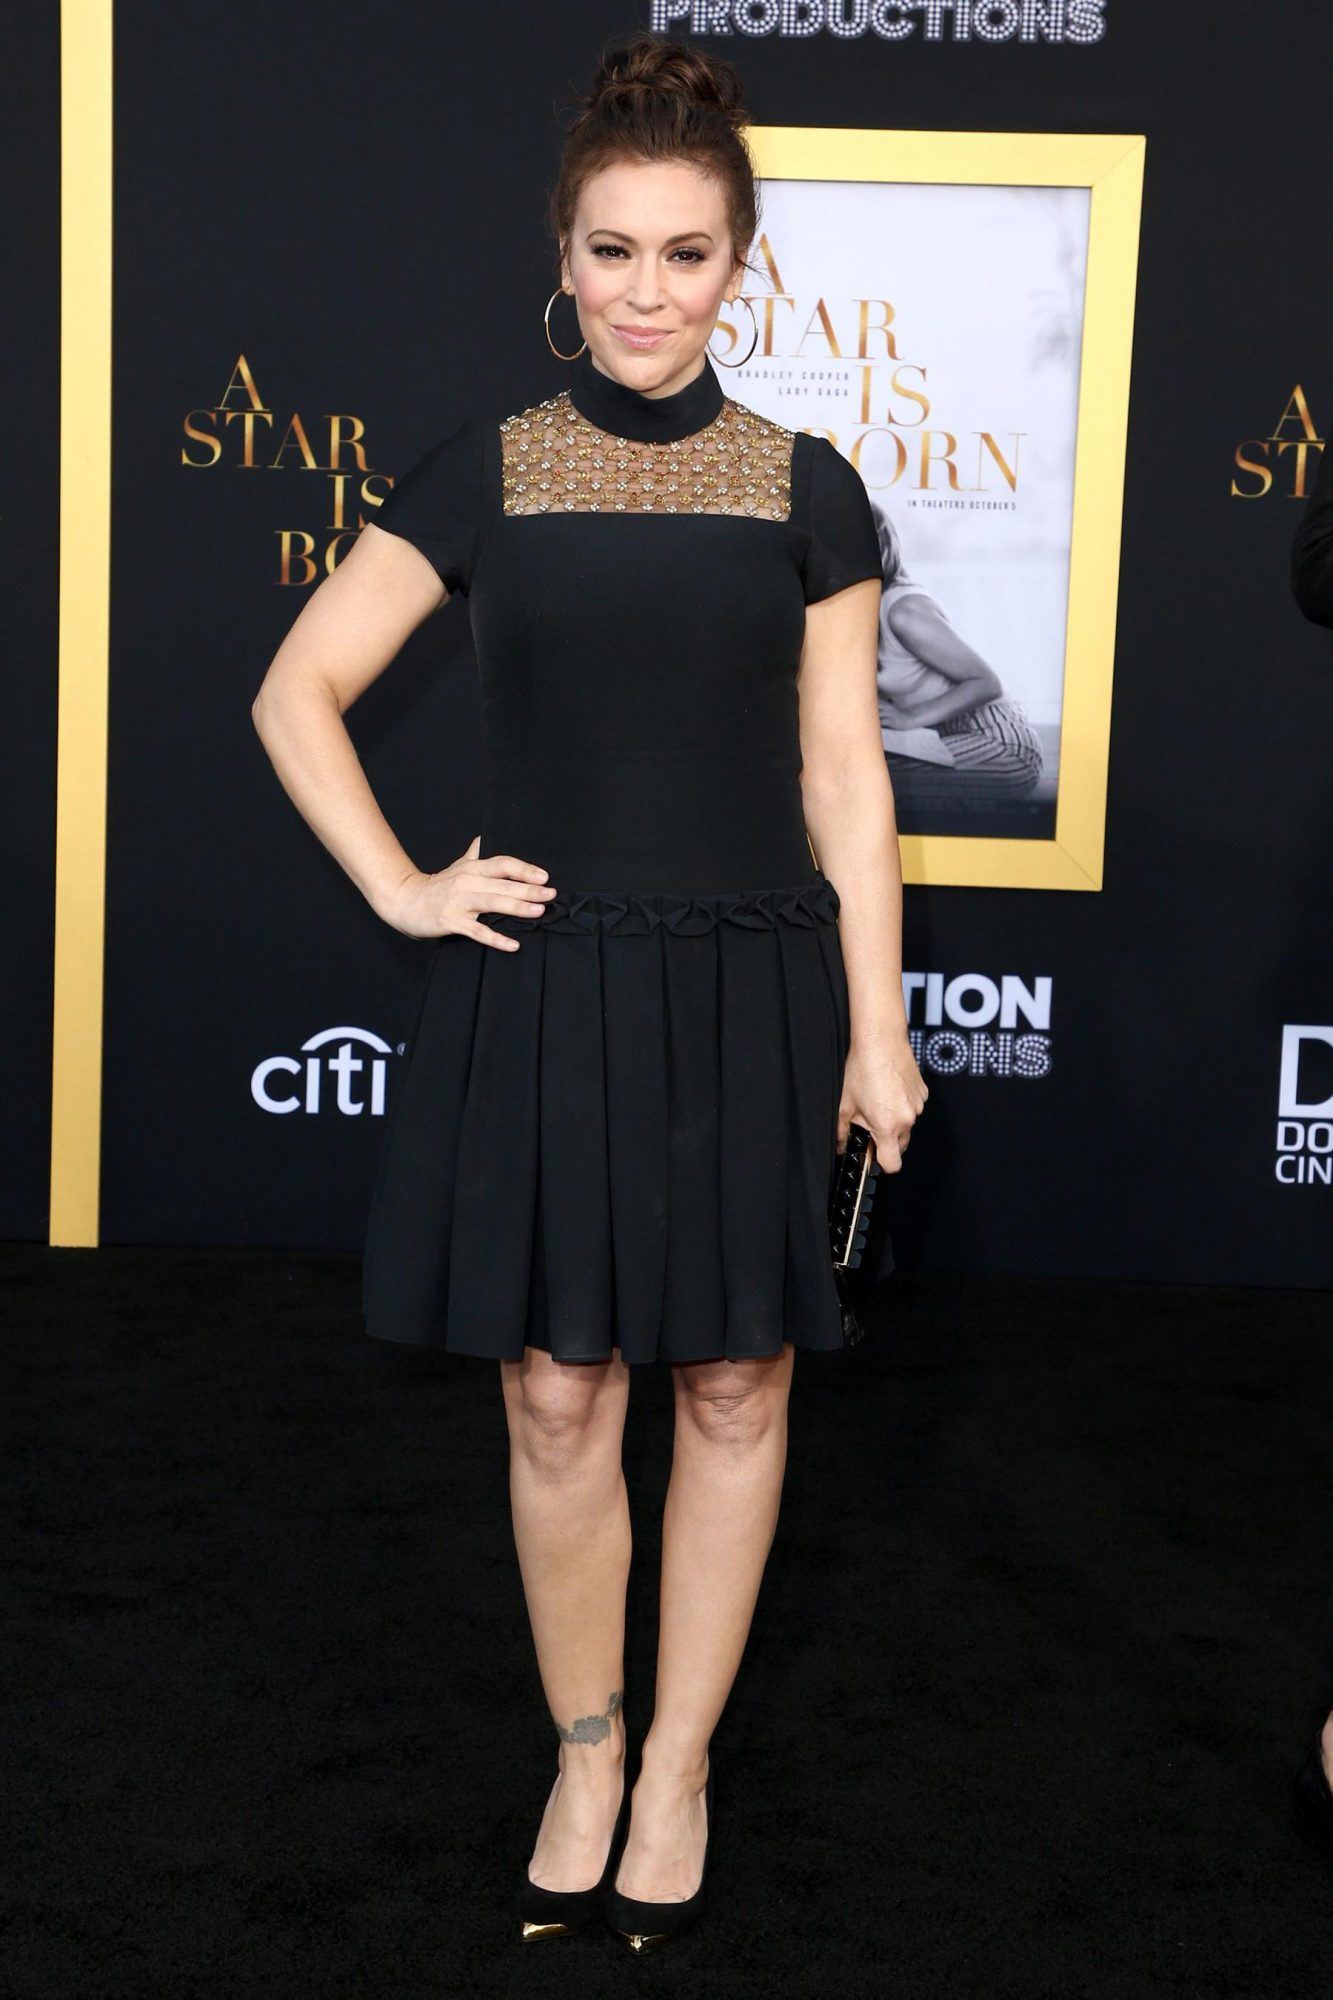 'A Star is Born' film premiere, Arrivals, Los Angeles, USA - 24 Sep 2018